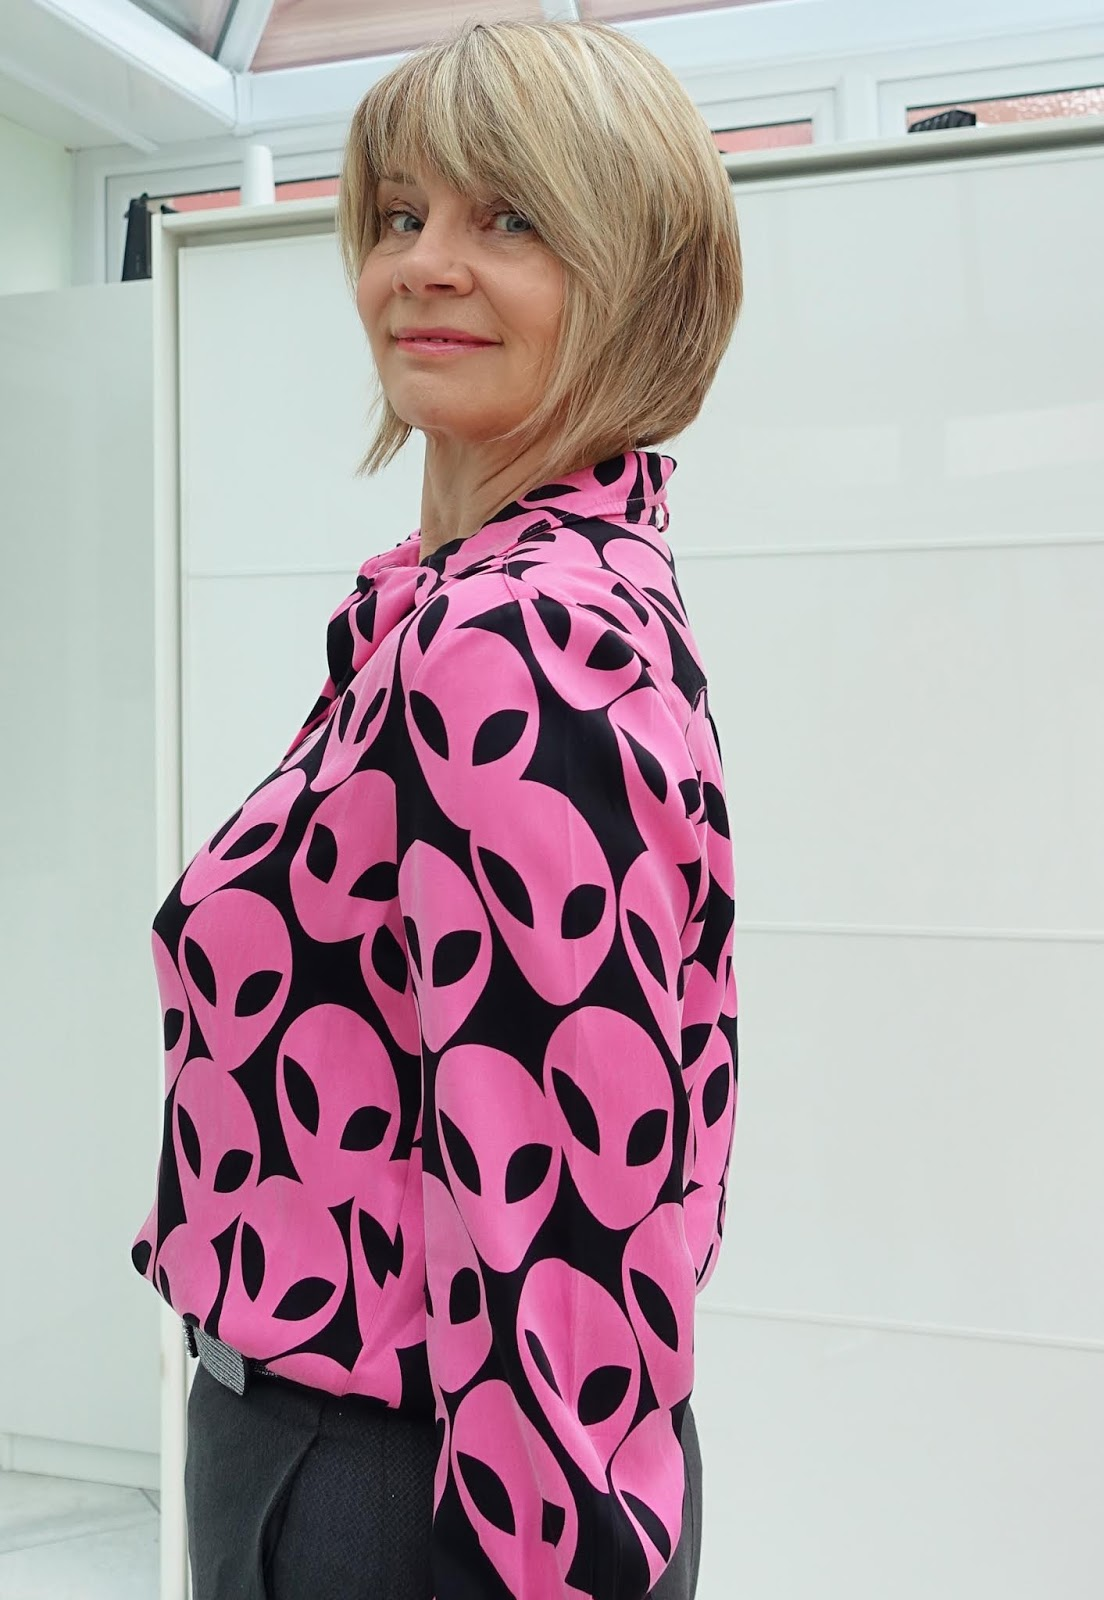 There's a ttwist in the design of this Fabienne Chapot blouse - it features aliens. Worn with grey and silver by Is This Mutton style blogger Gail Hanlon